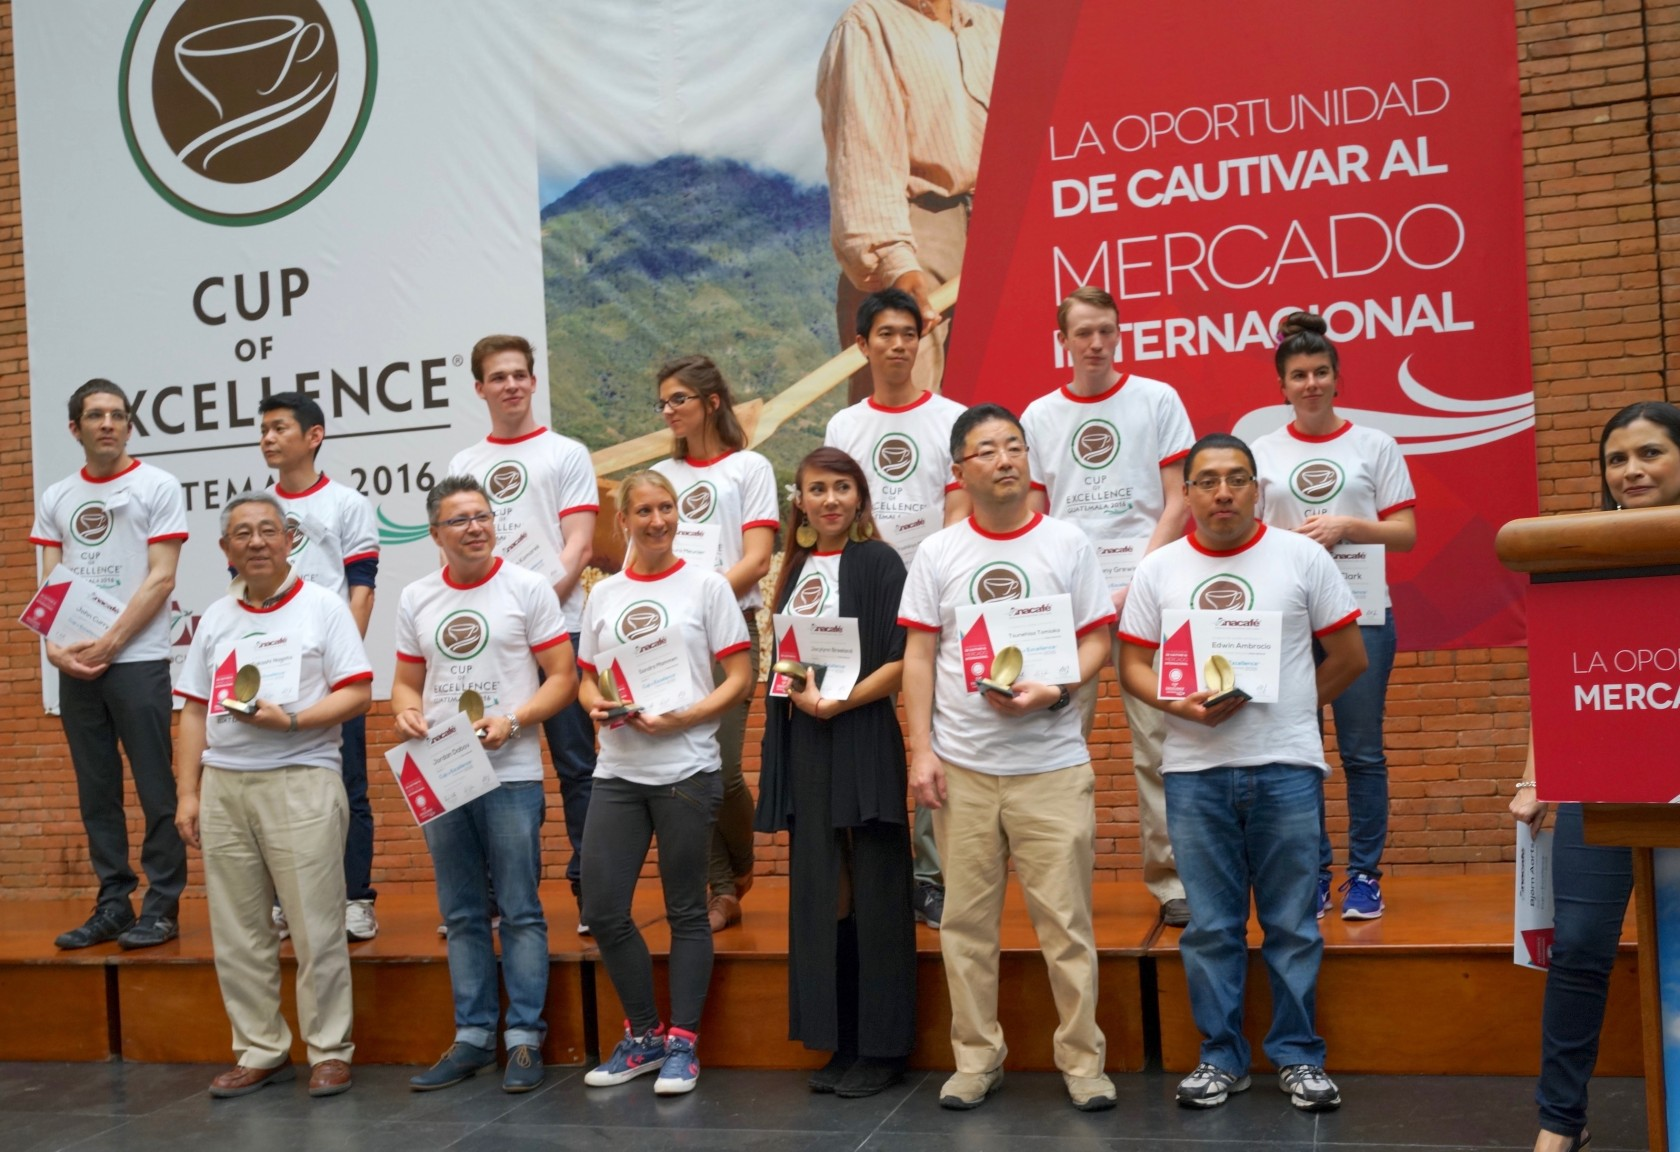 Cup of Excellence 2016 Guatemala